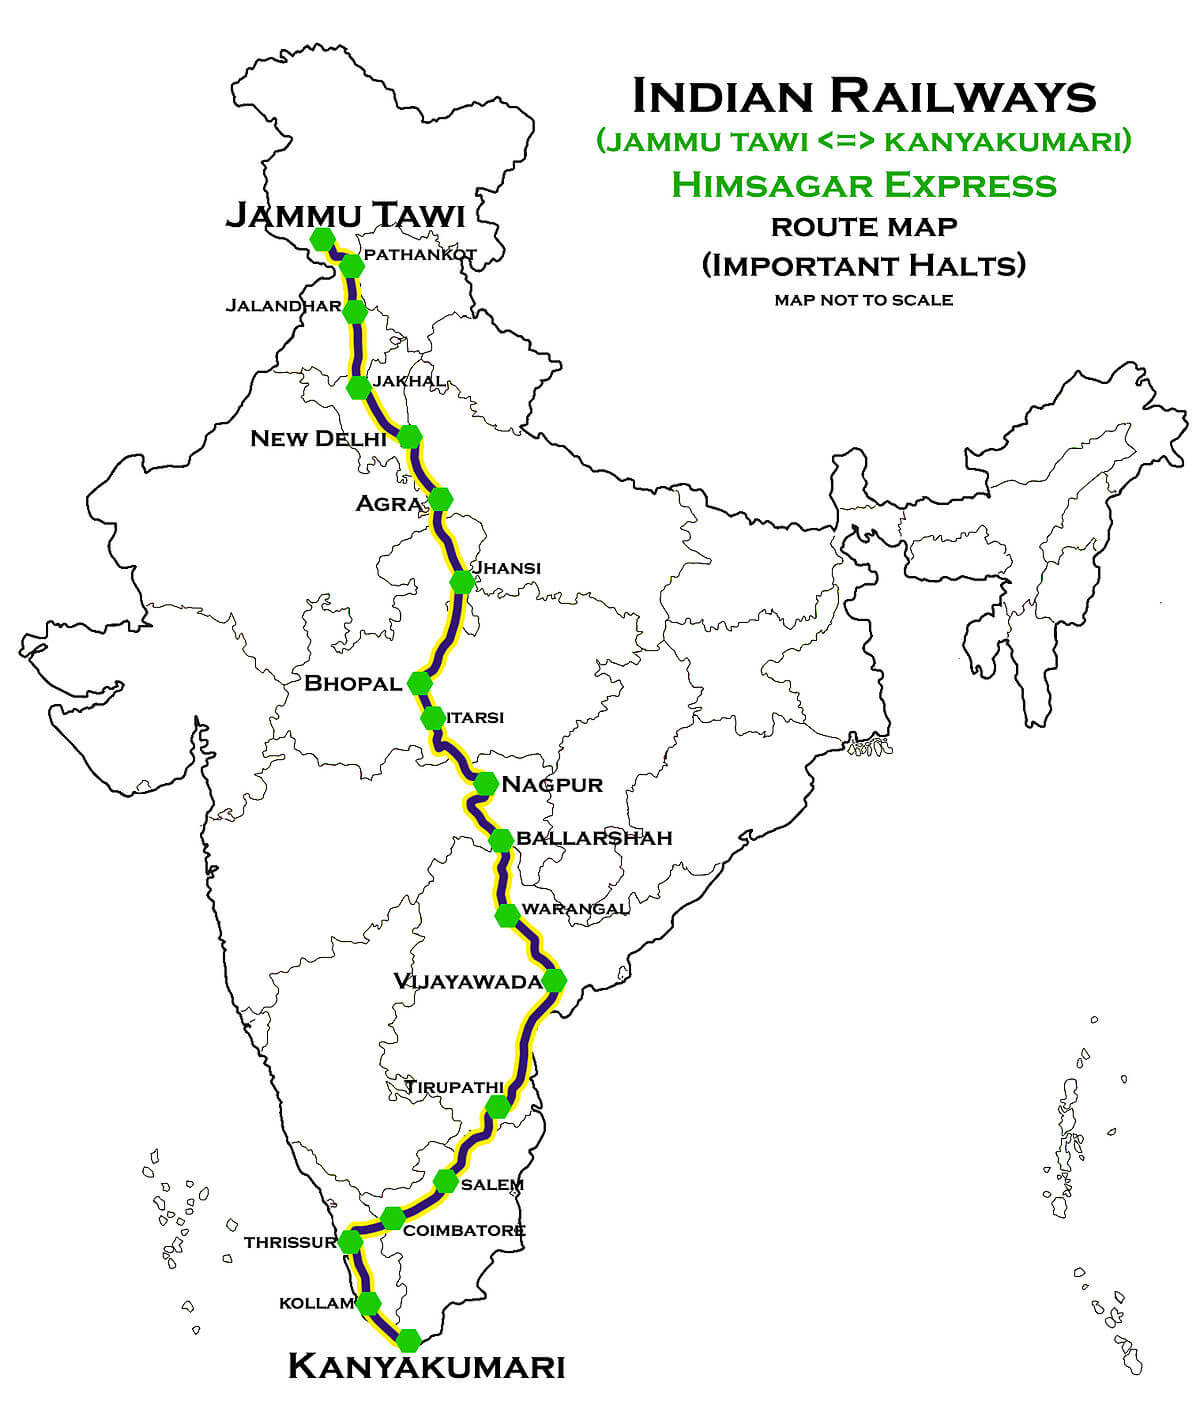 Himsagar Express route map one of largest railway route map in India